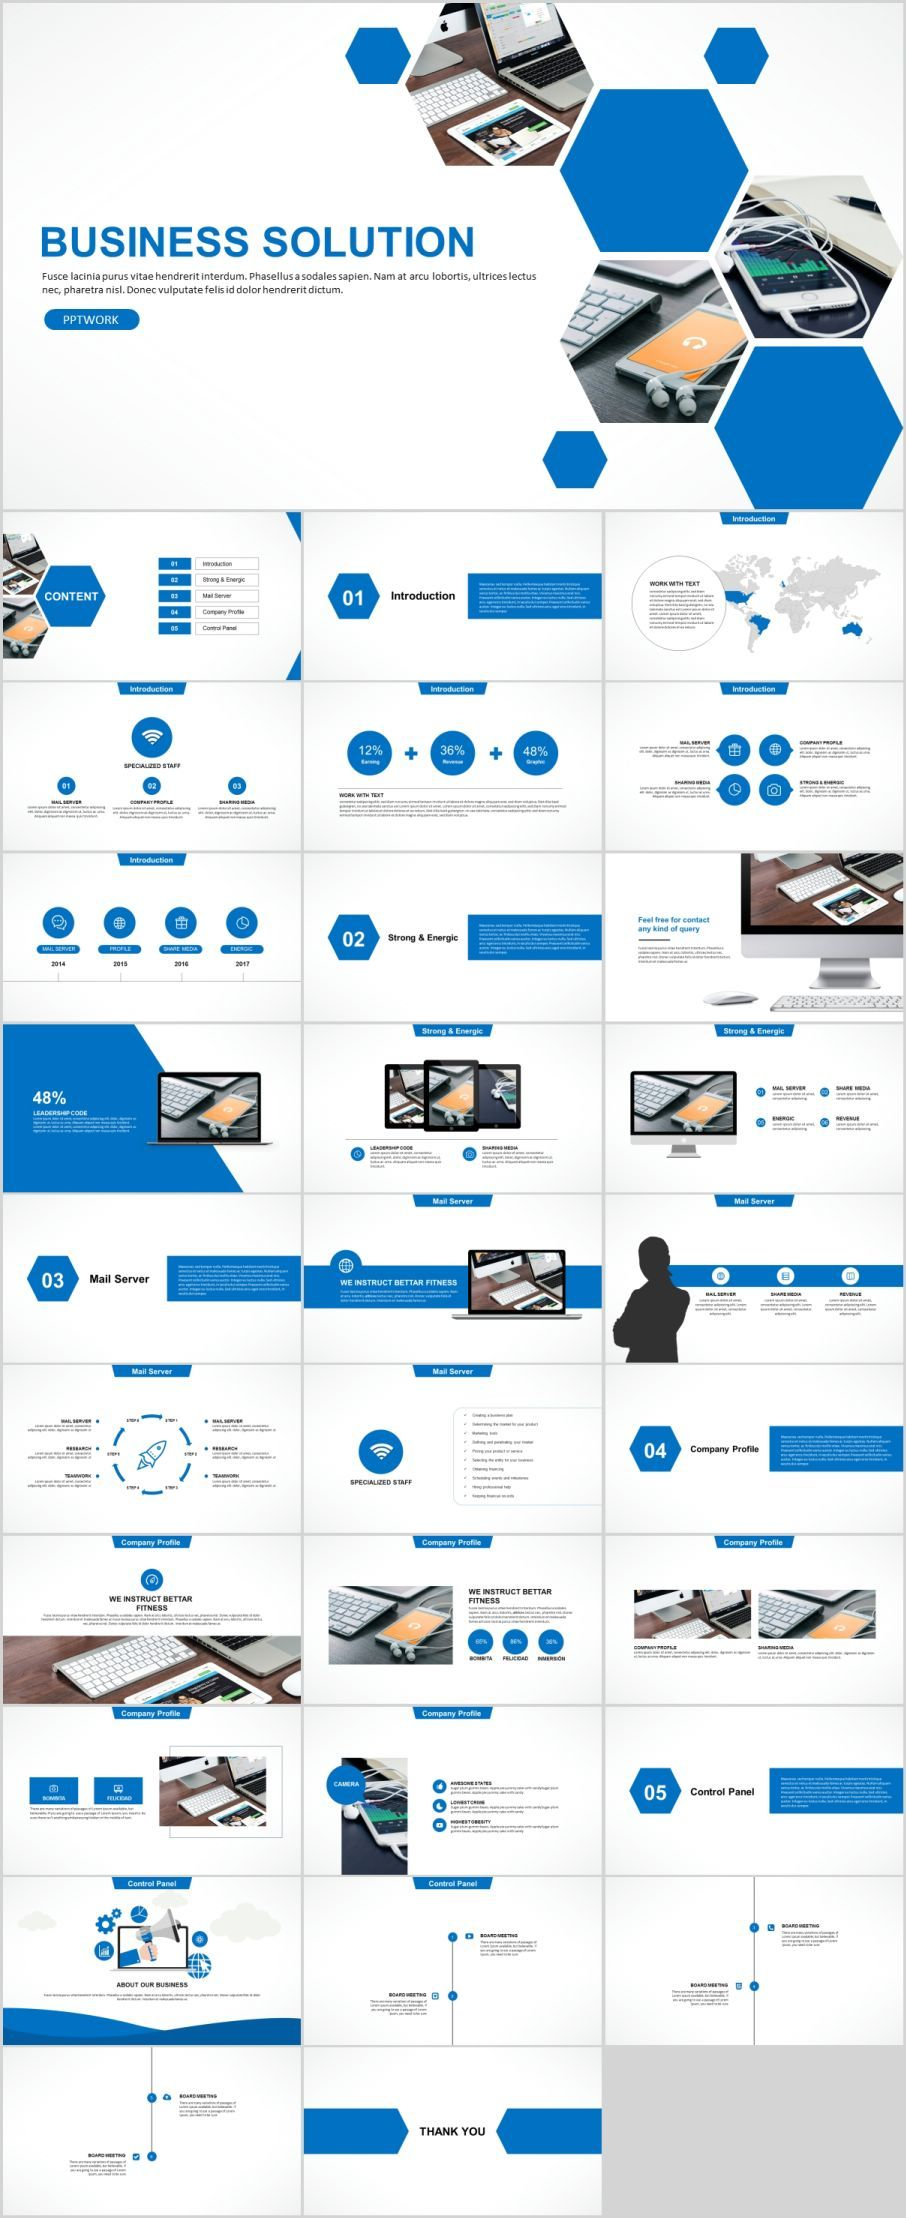 30 blue business solution powerpoint templates microsoft